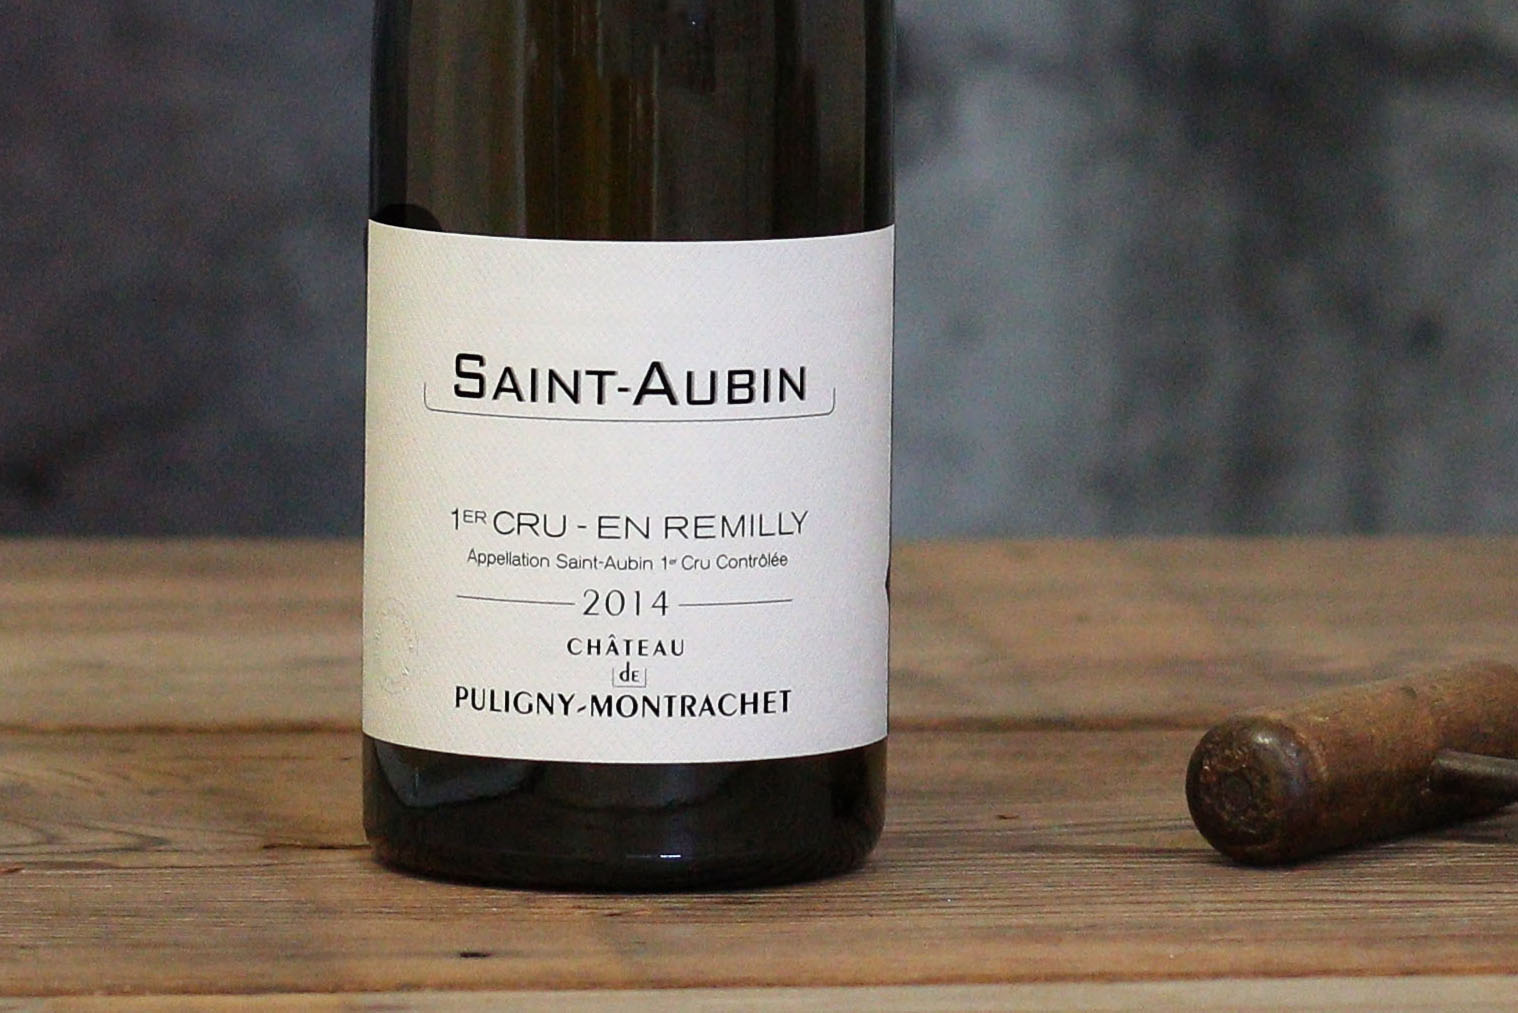 "SommSelect: Château de Puligny-Montrachet, Saint-Aubin ""En Remilly"" Côte de Beaune, Burgundy, France 2014 - SommSelect"